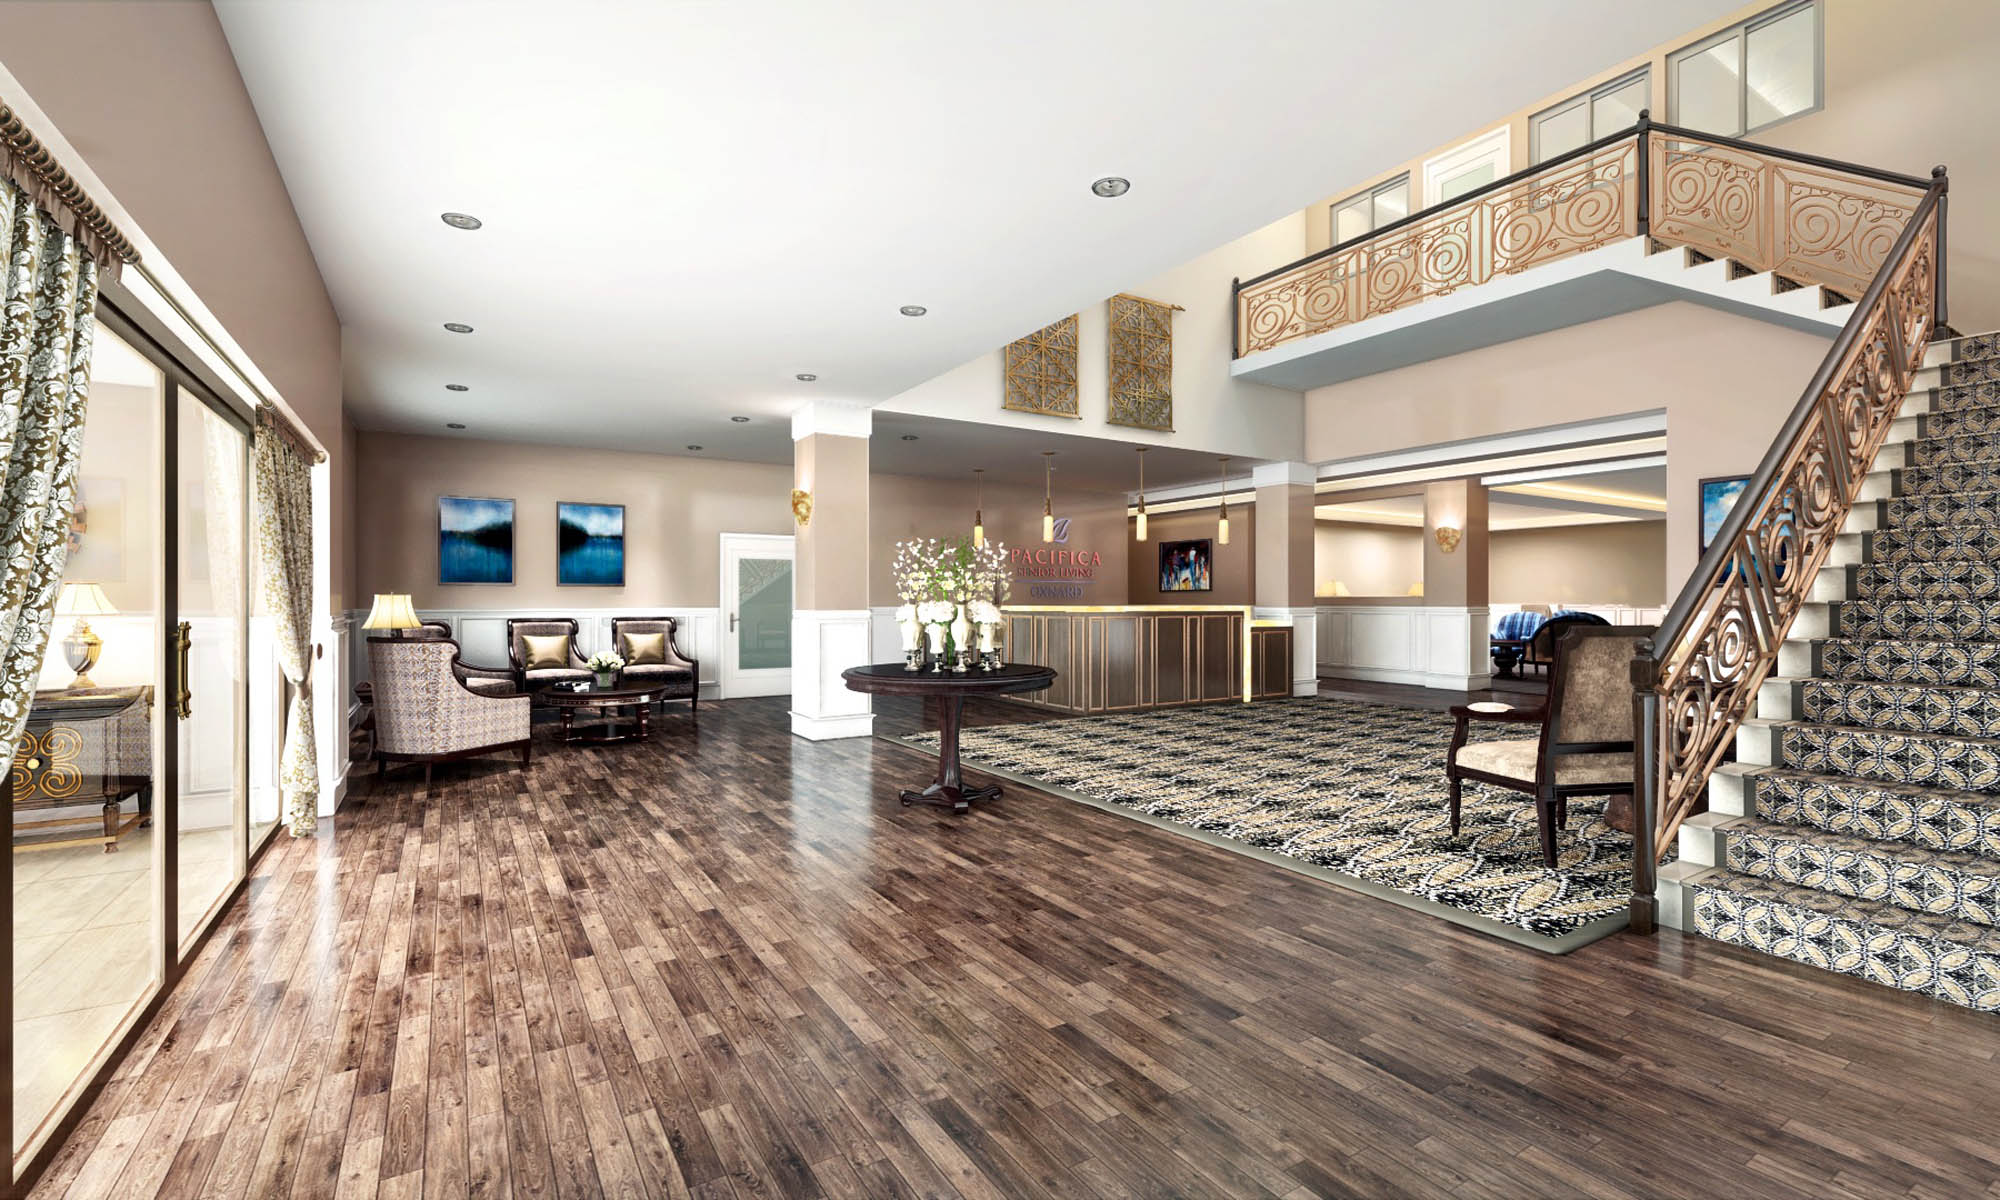 Pacifica Senior Living Retirement Amp Assisted Living